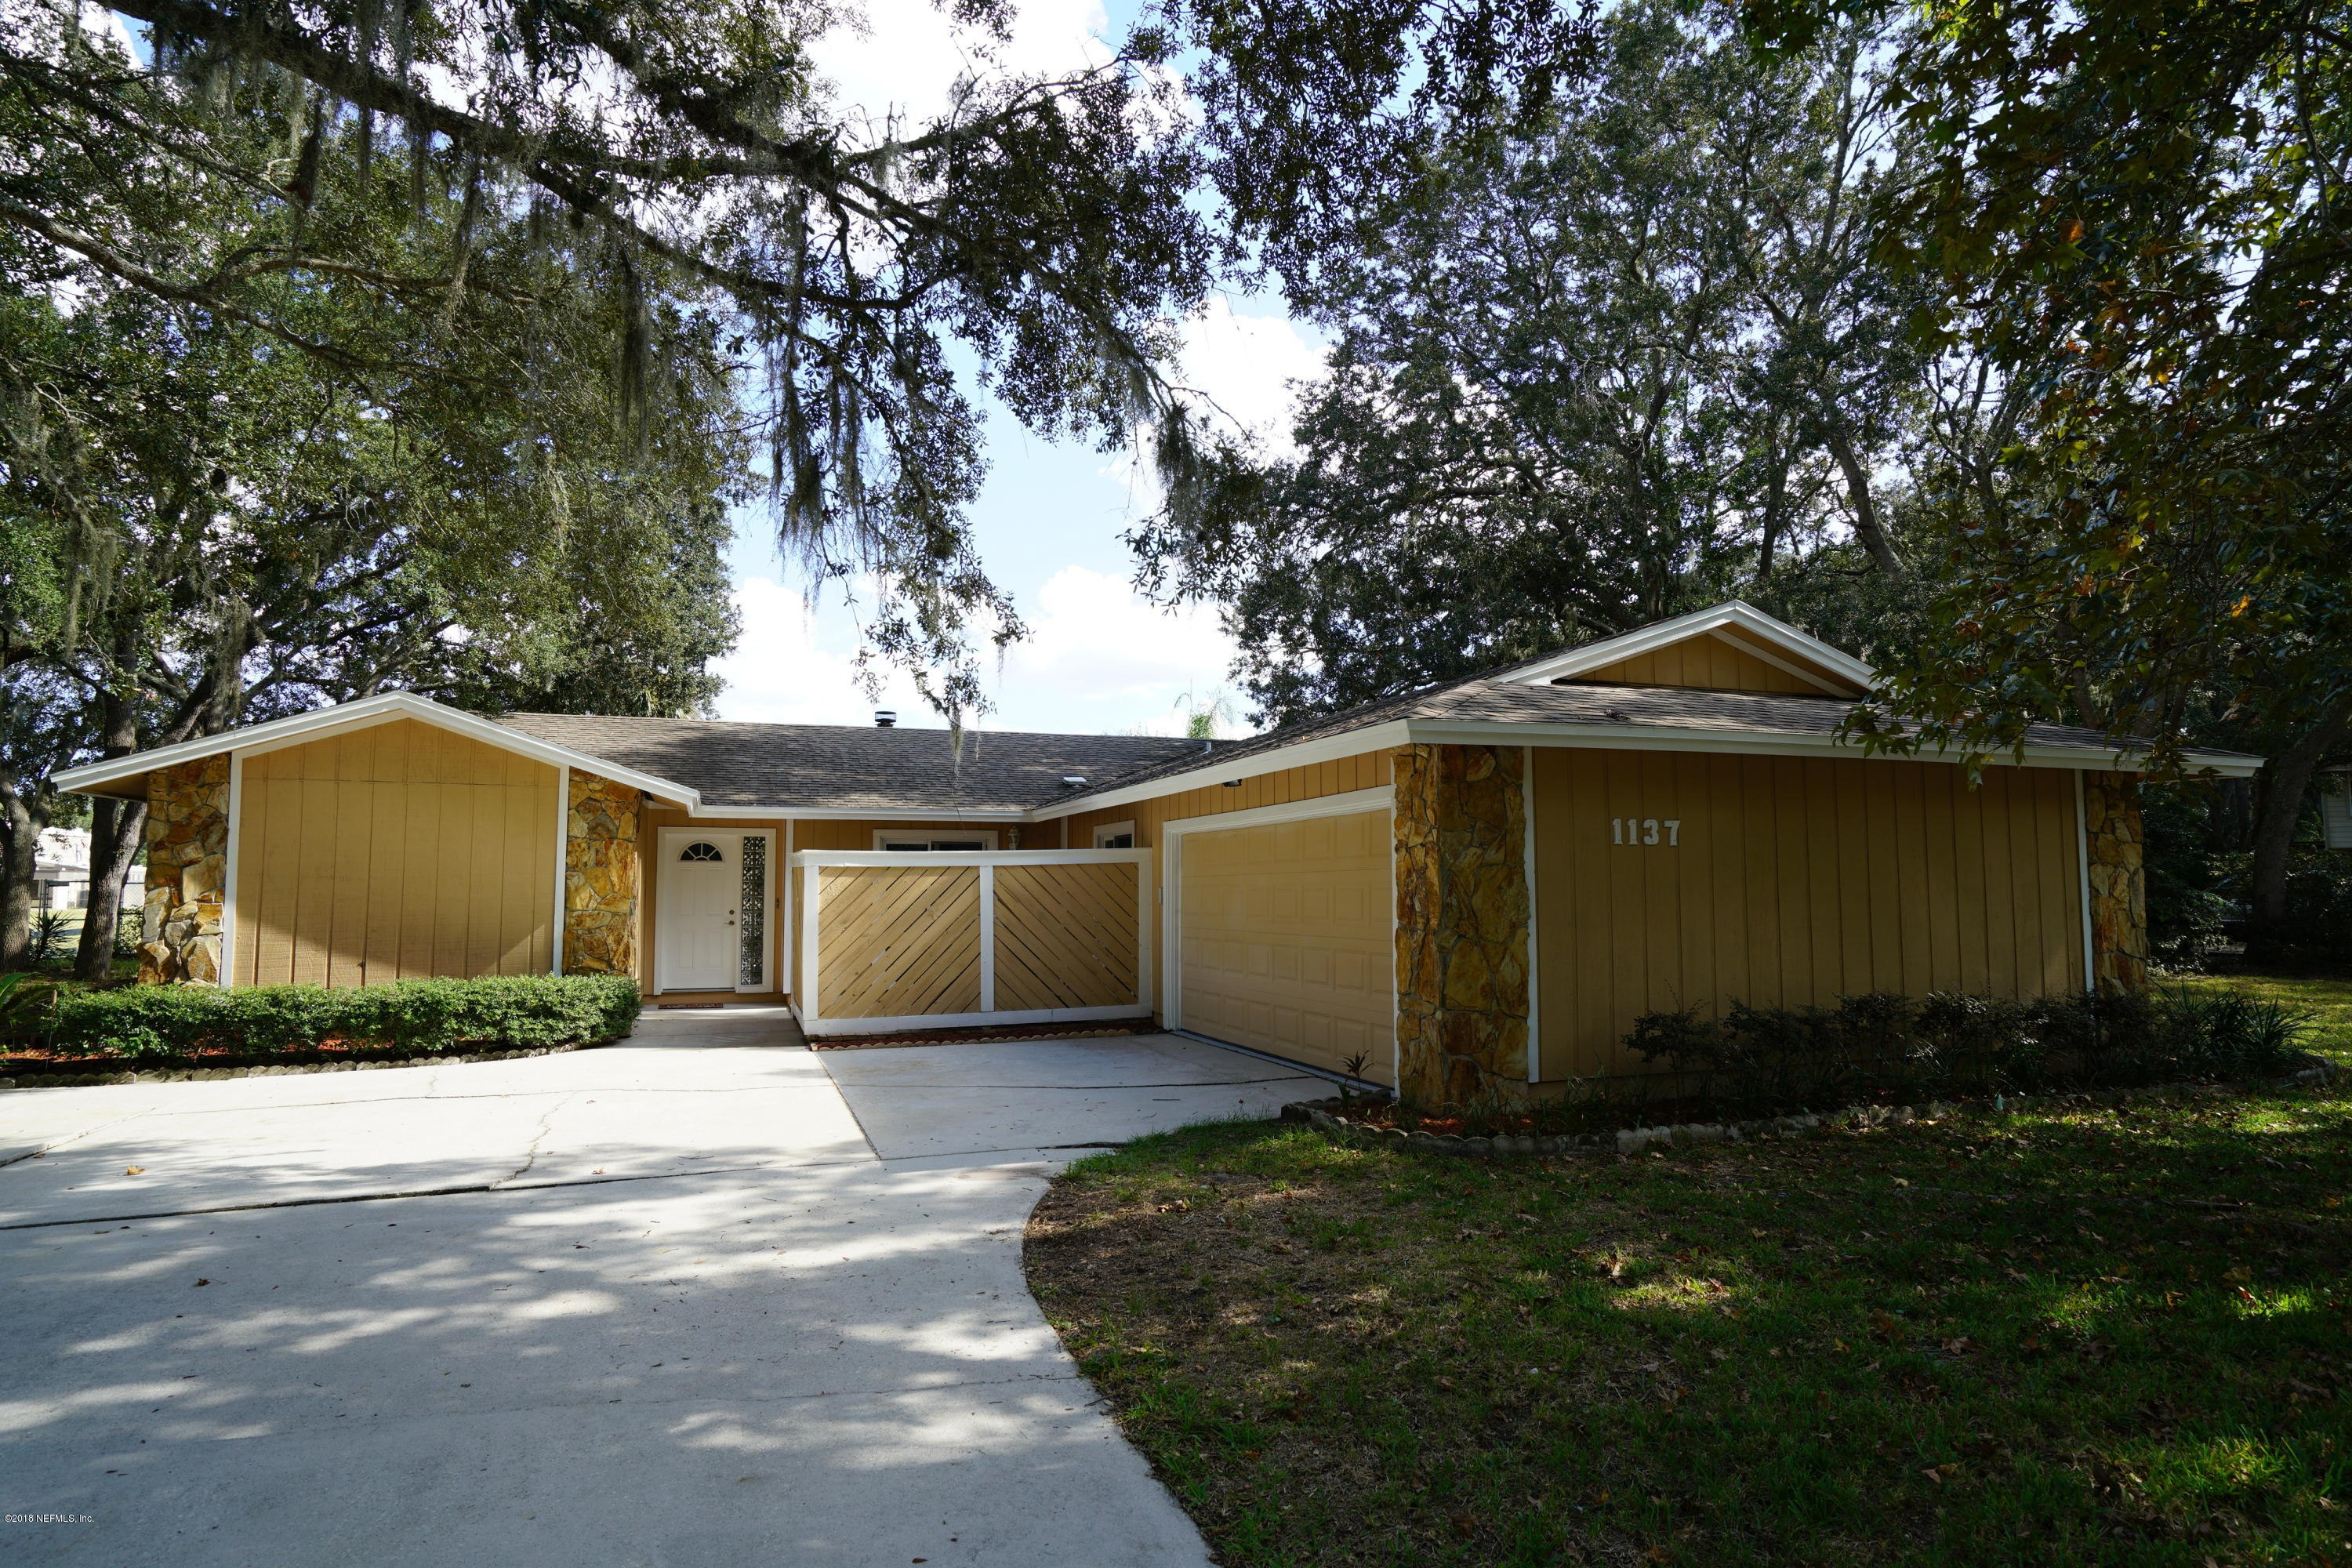 1137 HAMLET, NEPTUNE BEACH, FLORIDA 32266, 3 Bedrooms Bedrooms, ,2 BathroomsBathrooms,Residential - single family,For sale,HAMLET,955578